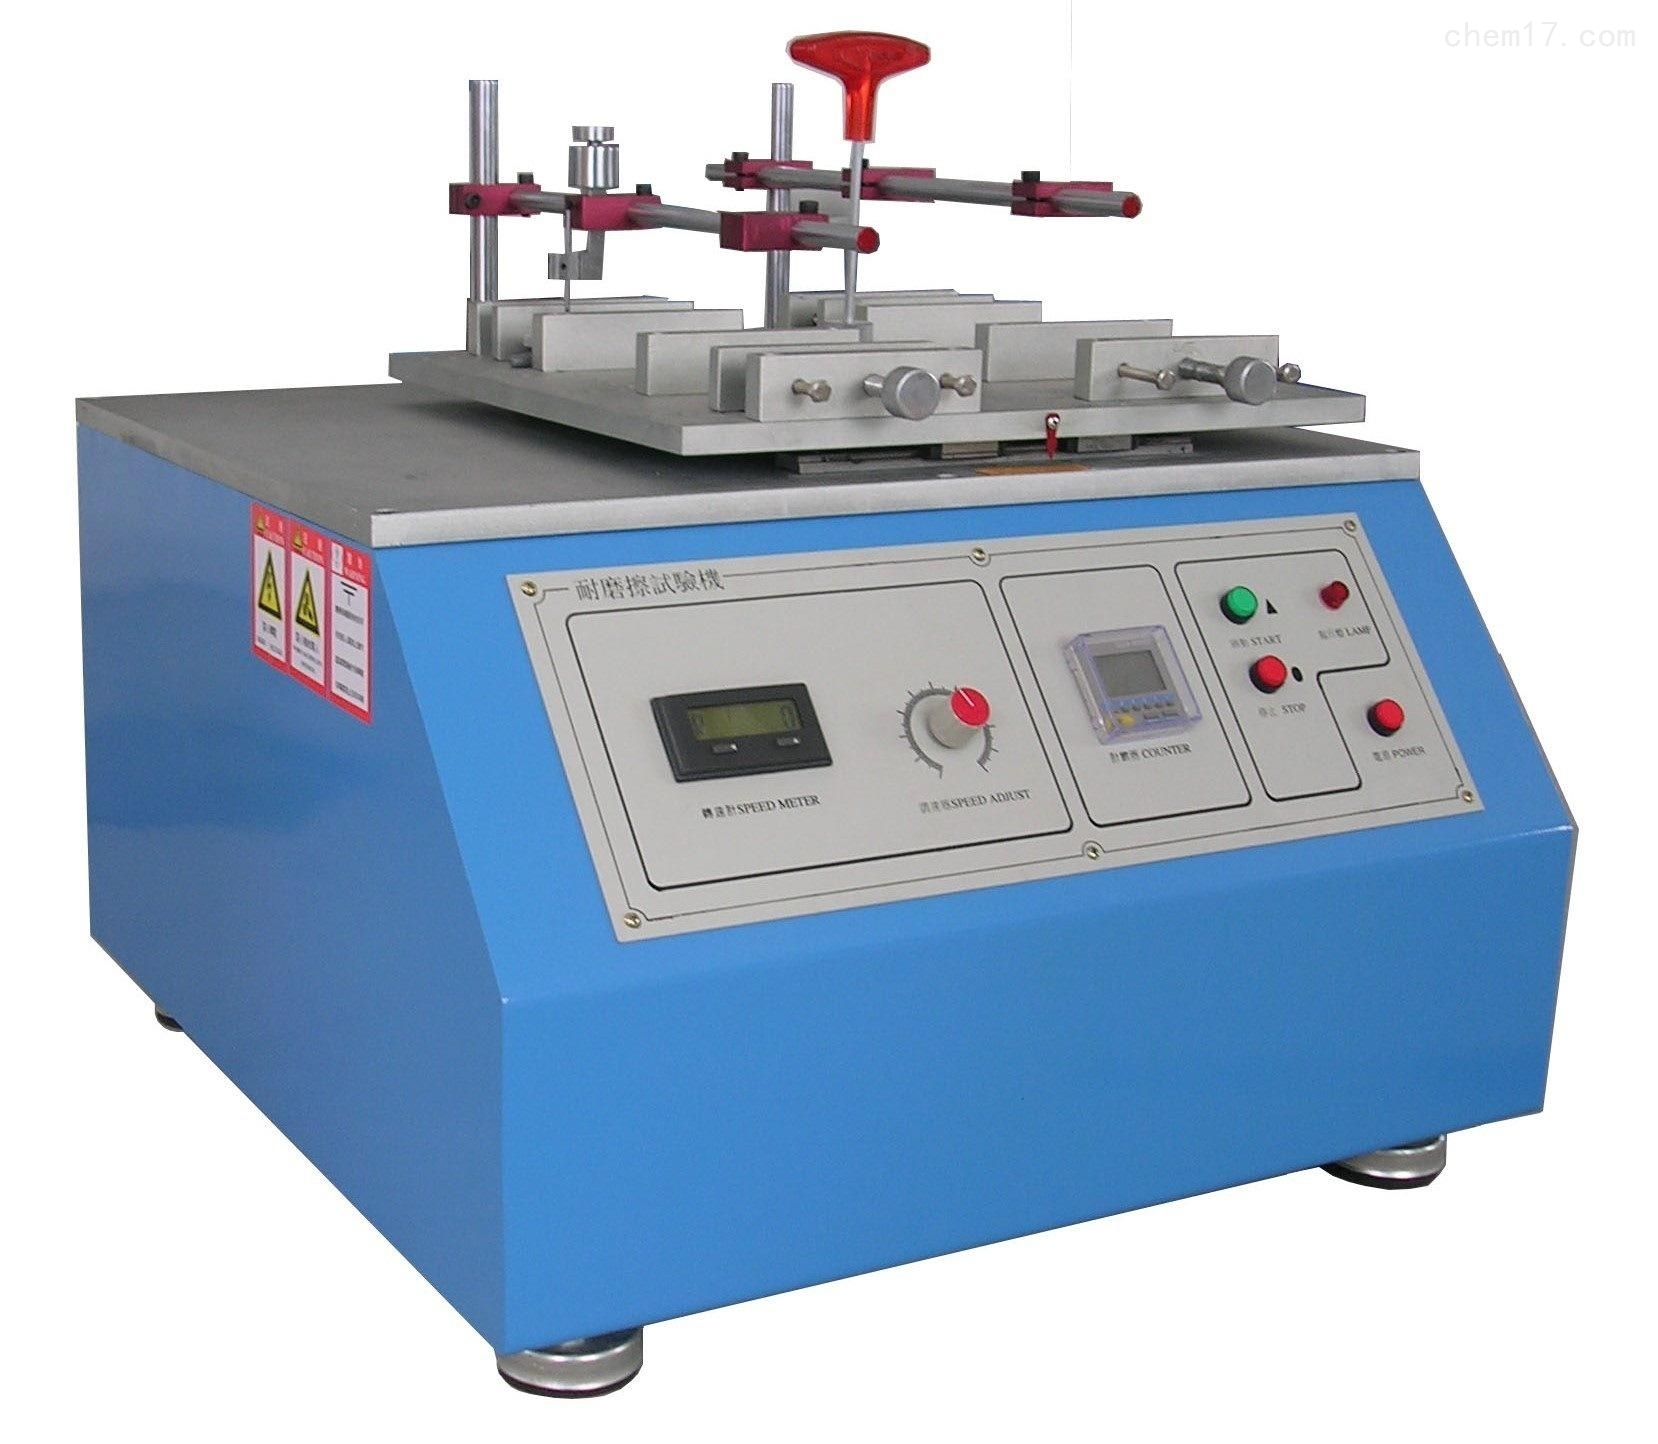 Alcohol abrasion test machine